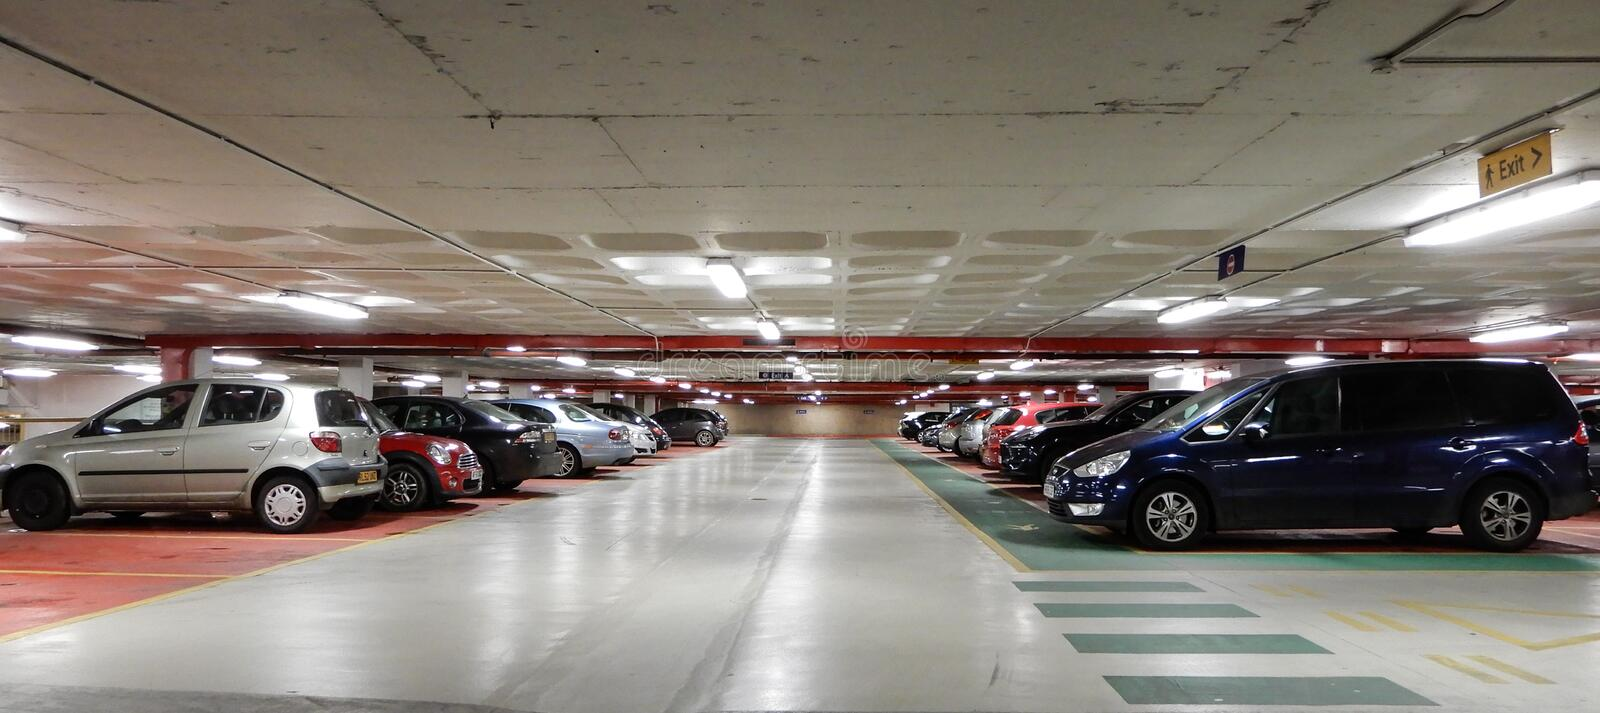 Interior do parque de estacionamento fotografia de stock